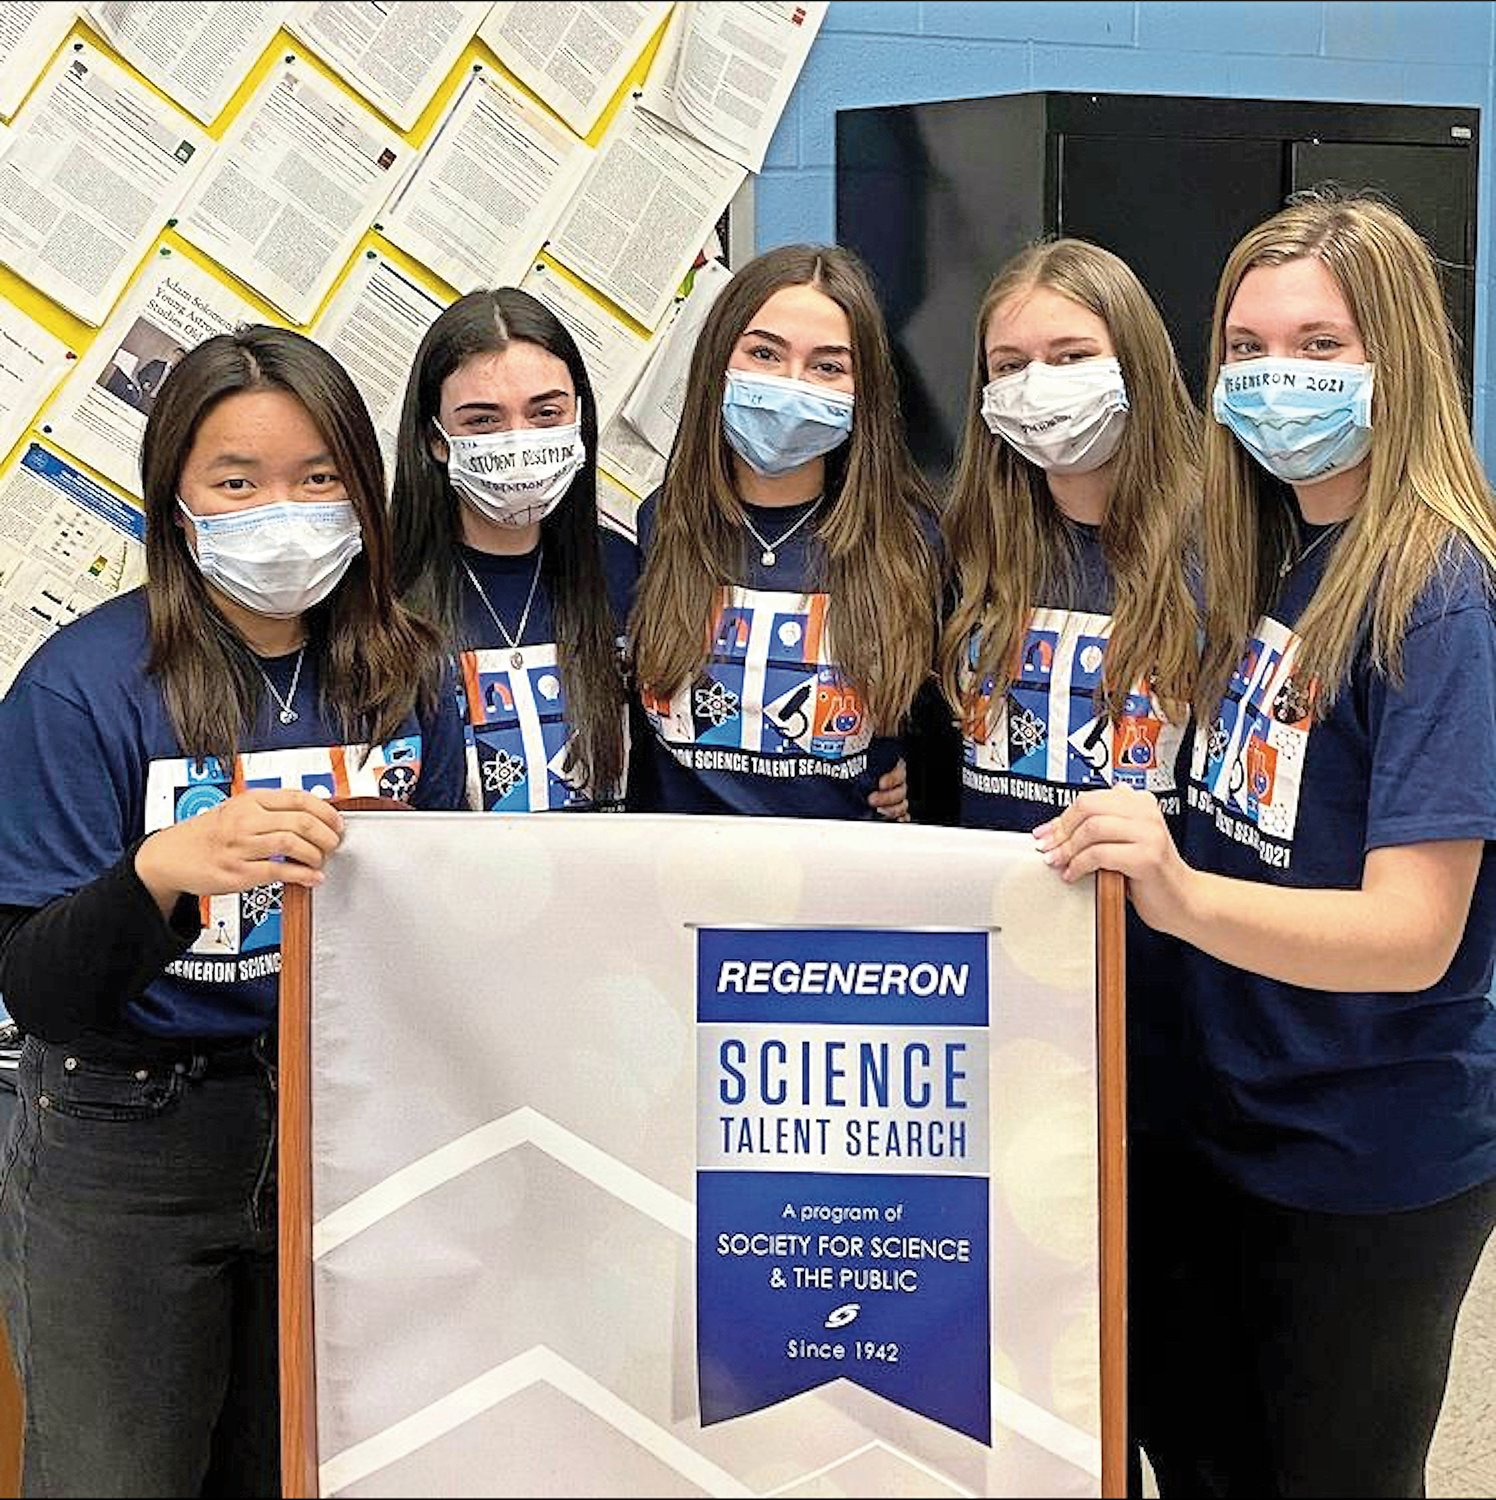 The Regeneron Science Talent Search is a program of the Society for Science, and is considered one of the most prestigious pre-college science competitions in the country.